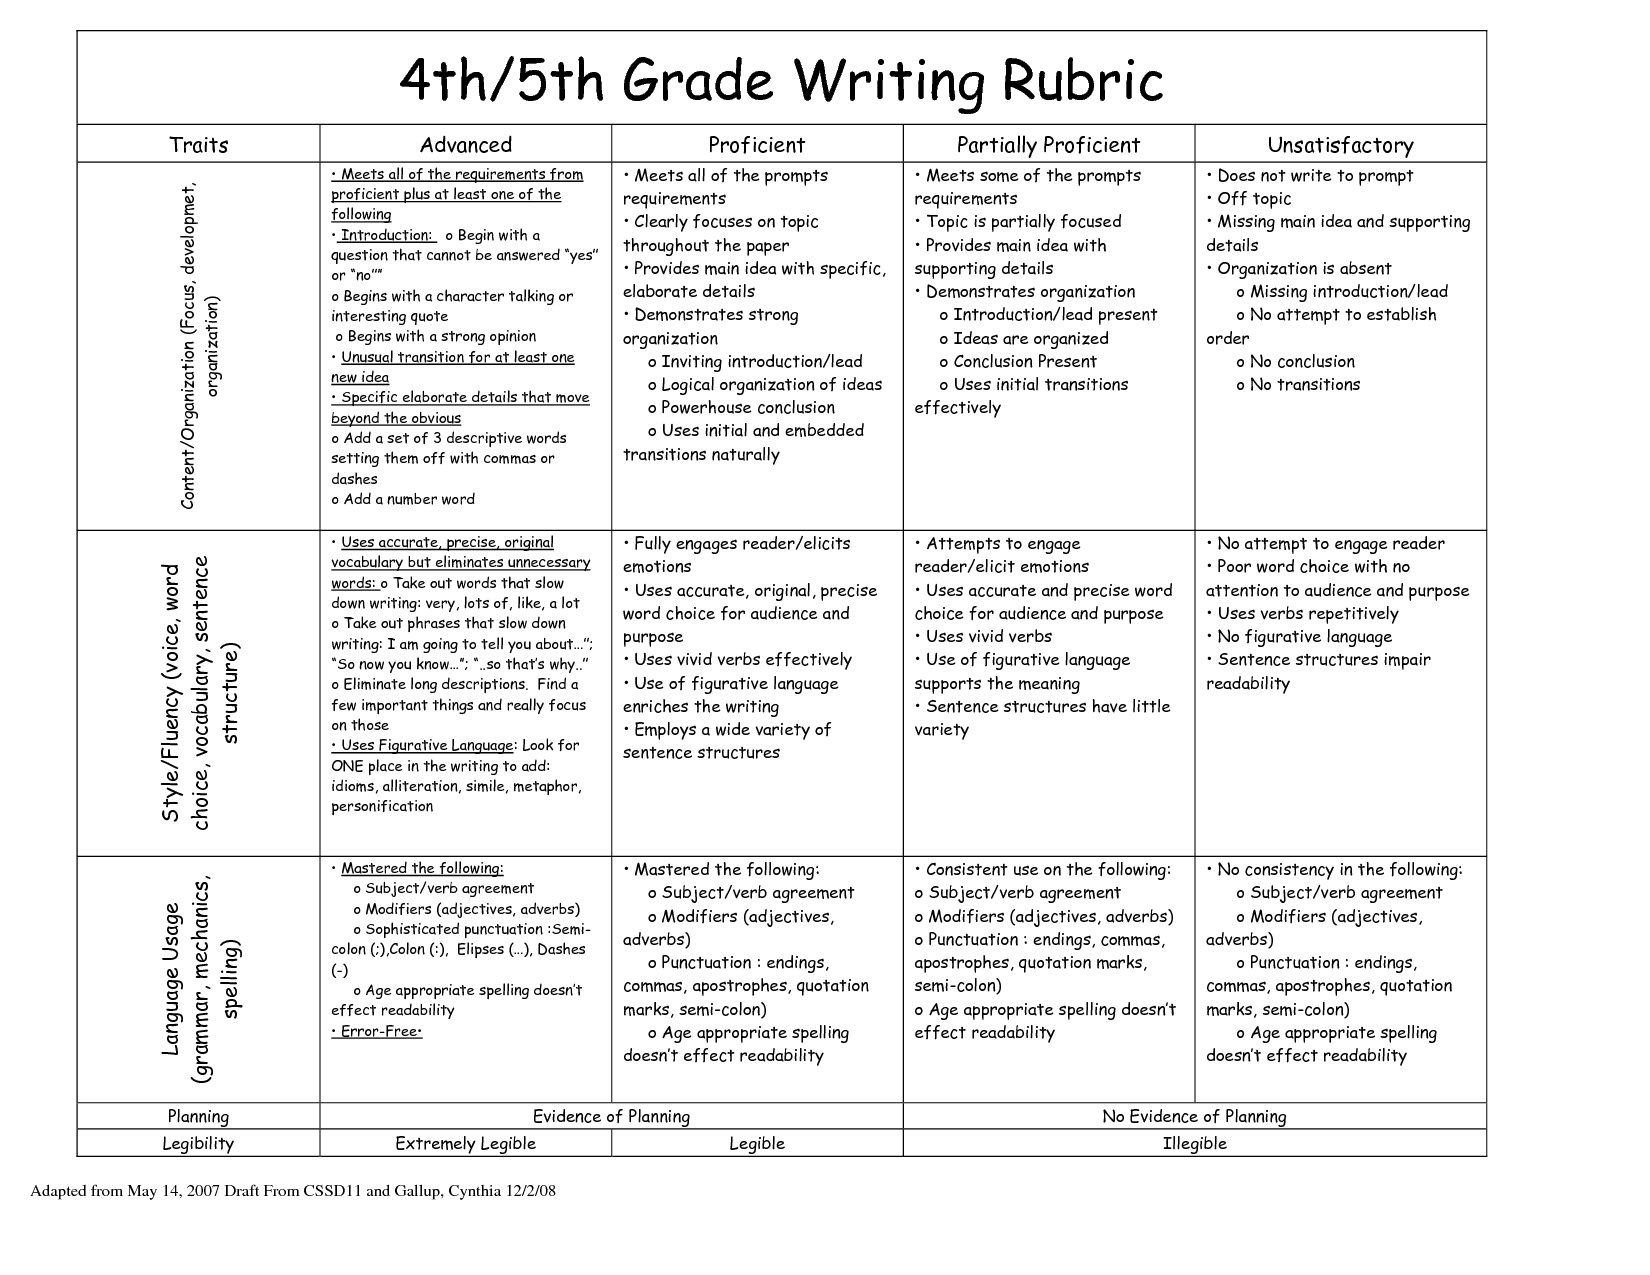 Creative Writing Rubric 5th Grade